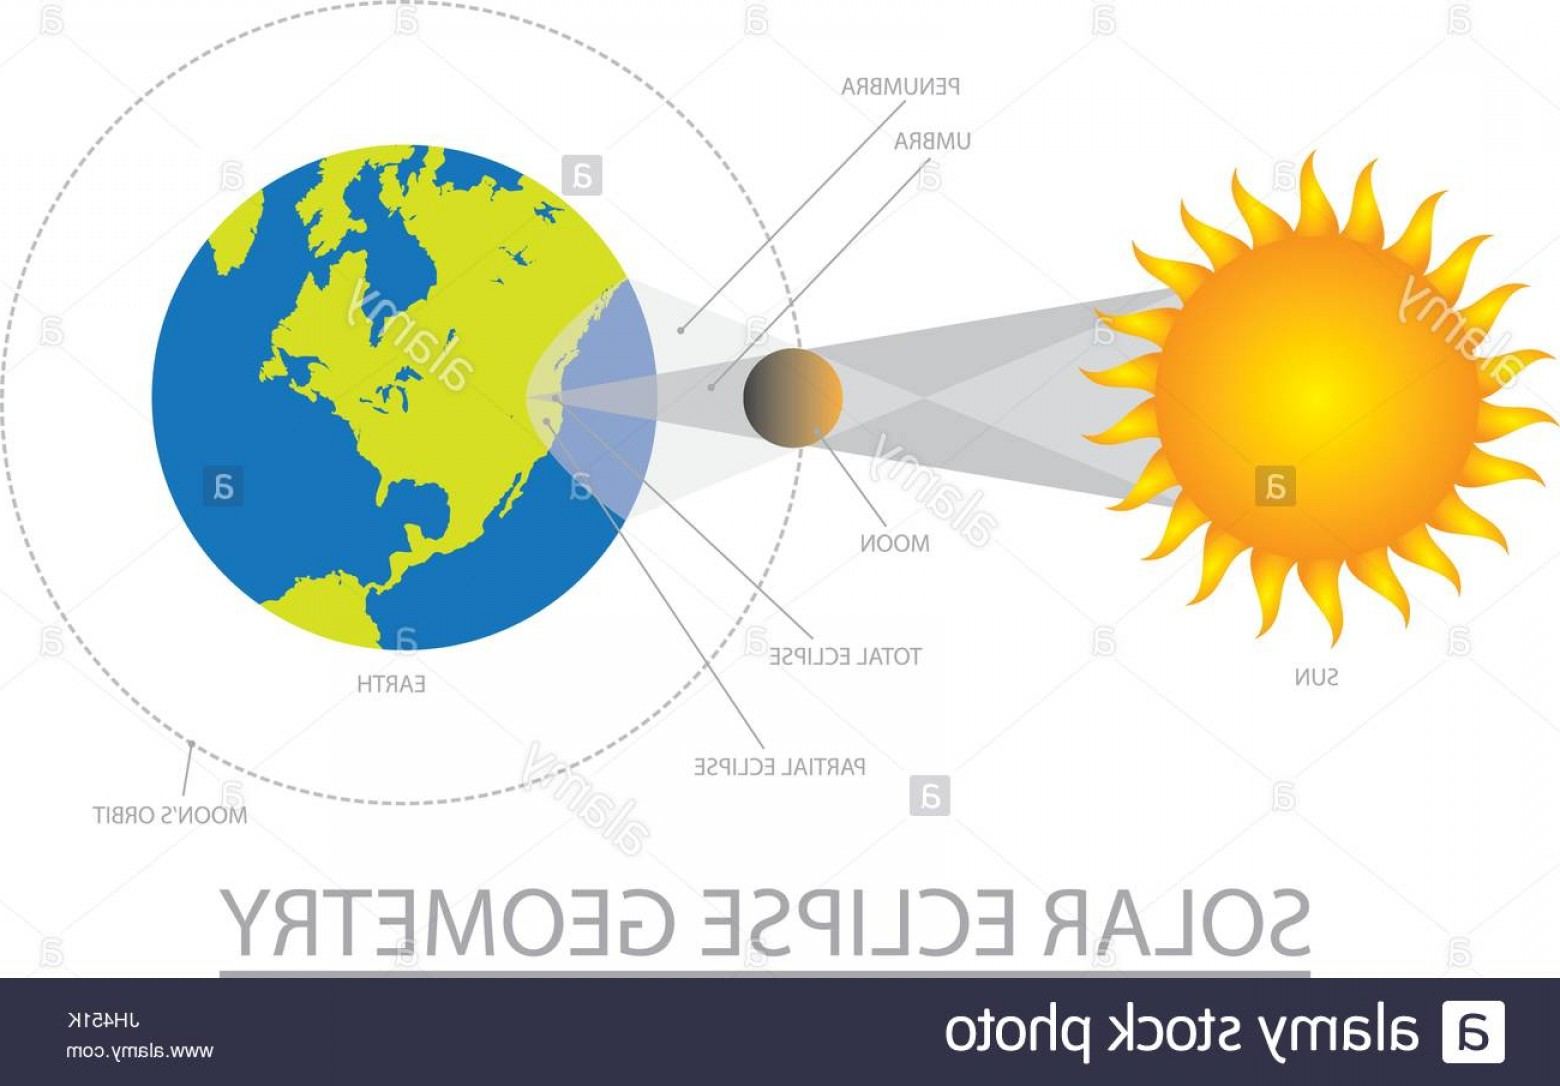 Geometric Sun Vector: Stock Photo Solar Eclipse Geometry With Sun Moon Earth Orbit Two Shadows Color